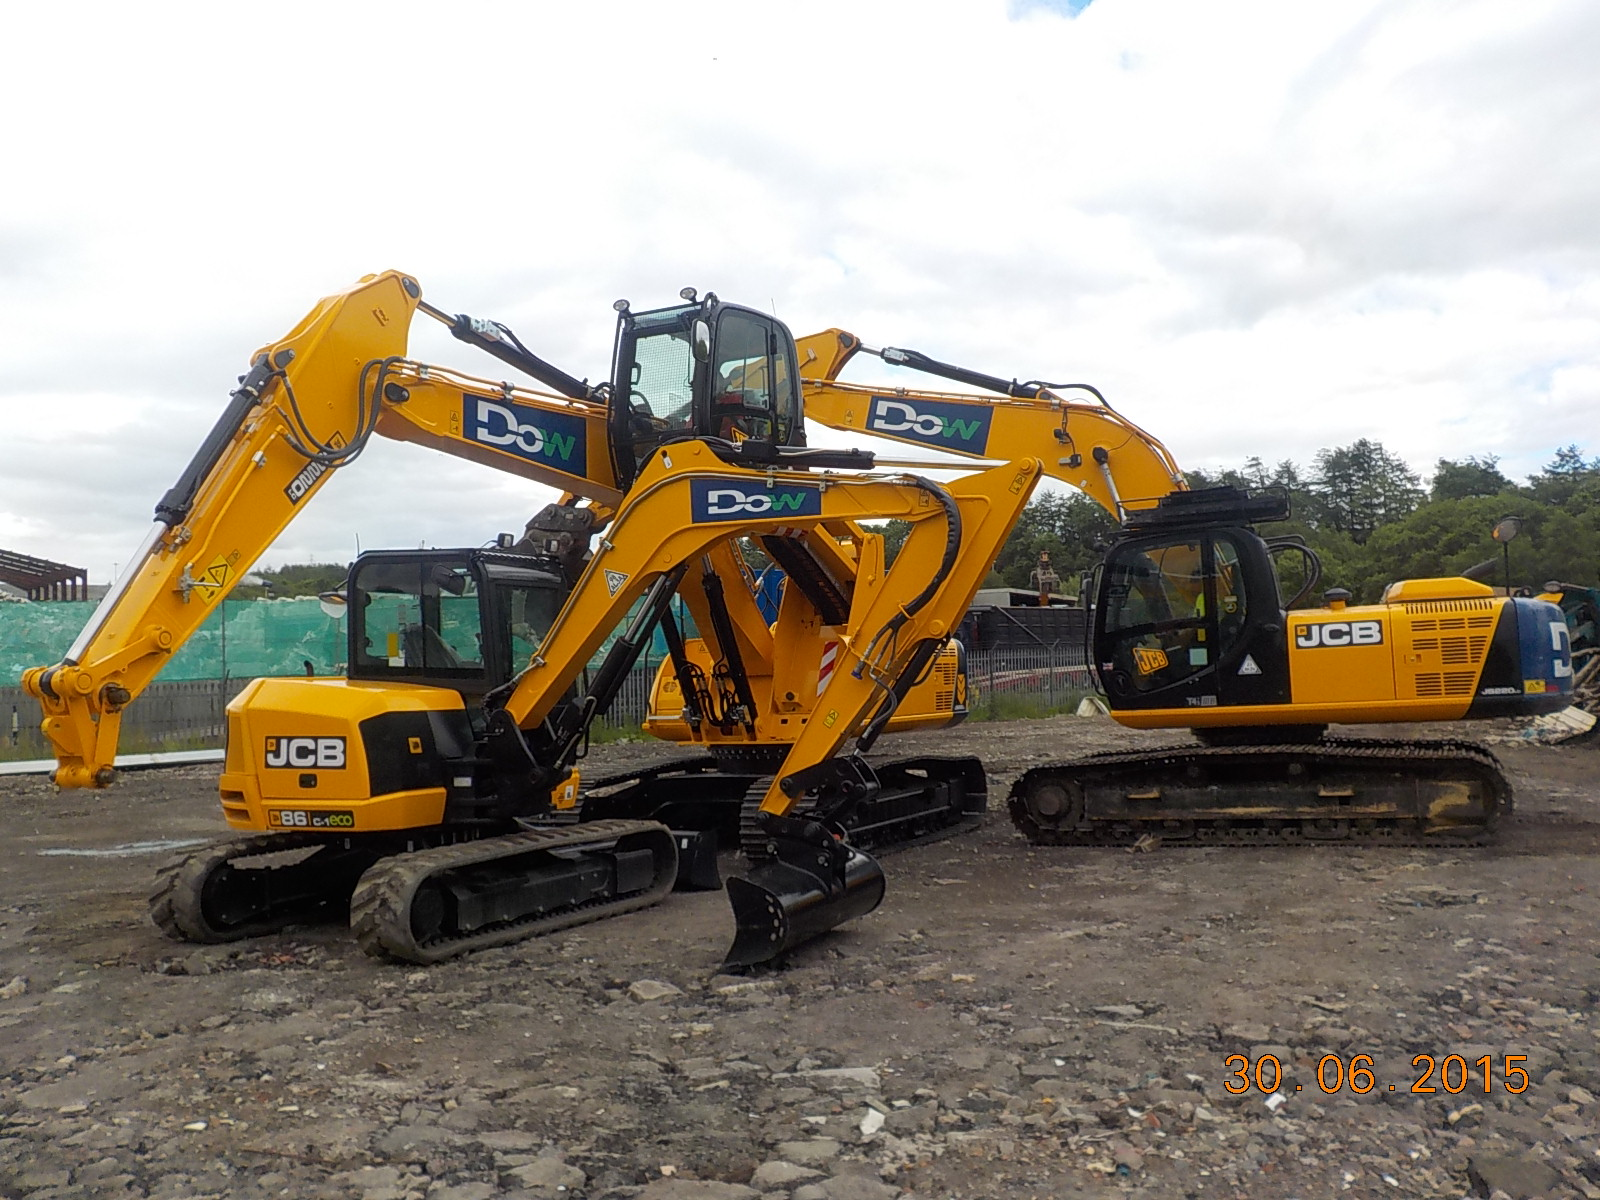 JCB diggers from Dow